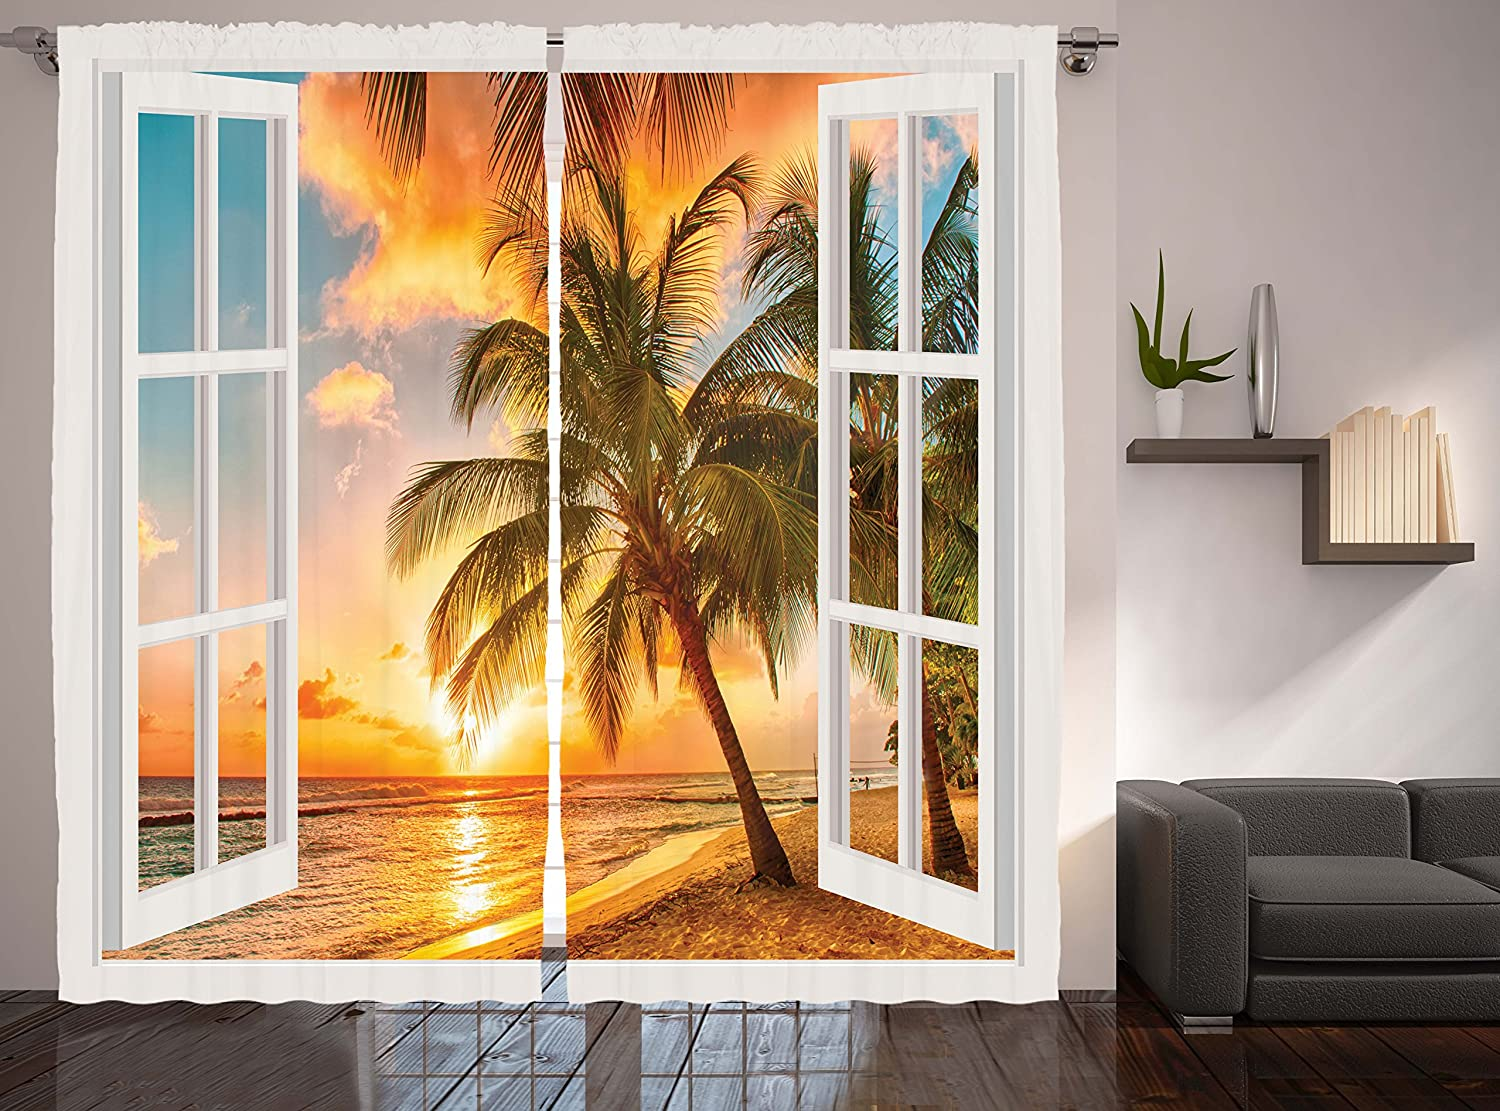 Personalized Decor for Living Room Decorations Curtains 2 Panels Set Palm Tree Sunset Scenery Scenic Fabric Beach House Wooden Windows Panoramic Art Pictures Natural, bluee orange Brown Green White